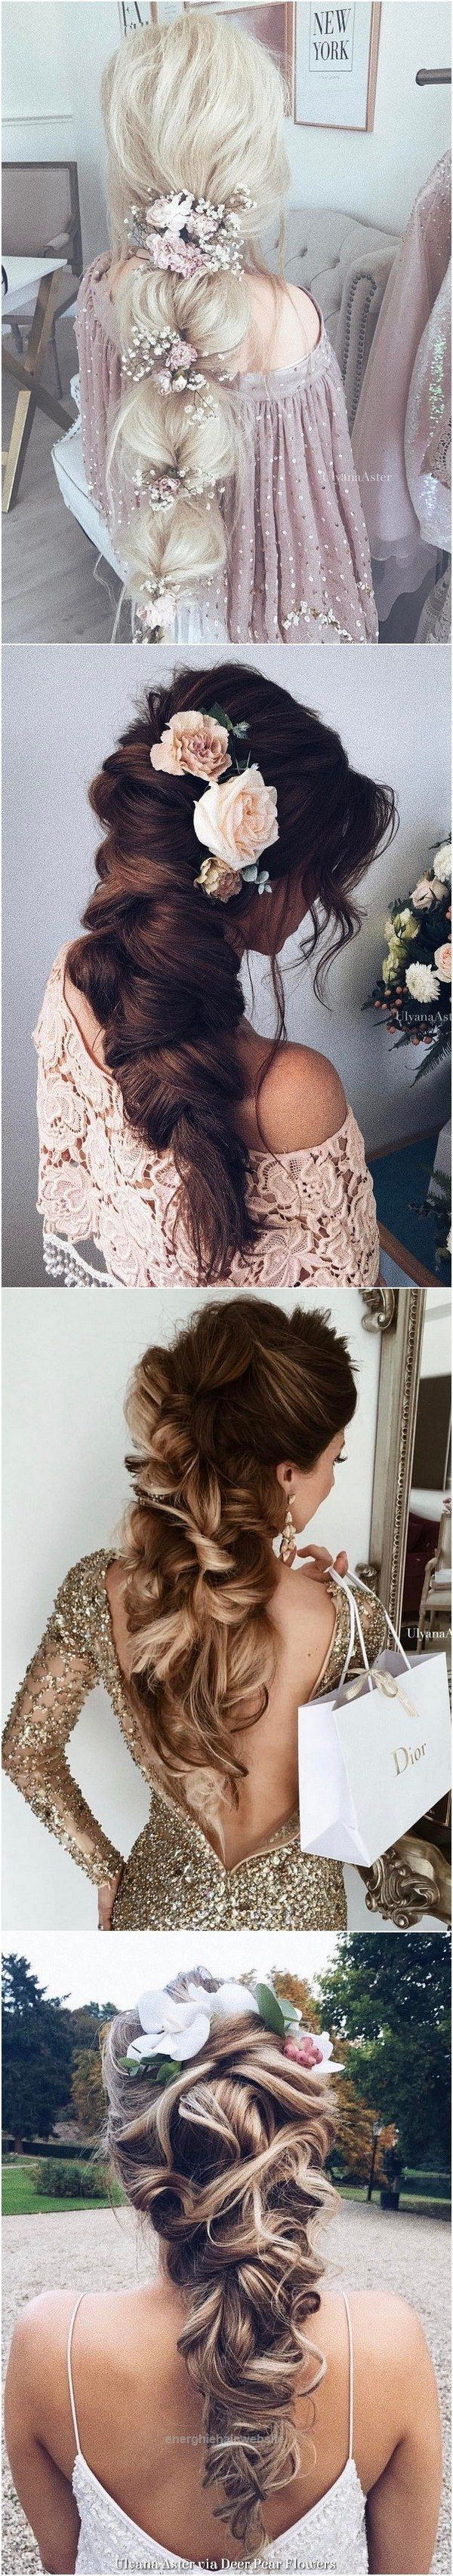 Best 25+ Ugly hair ideas on Pinterest | Ugly hairstyles ...